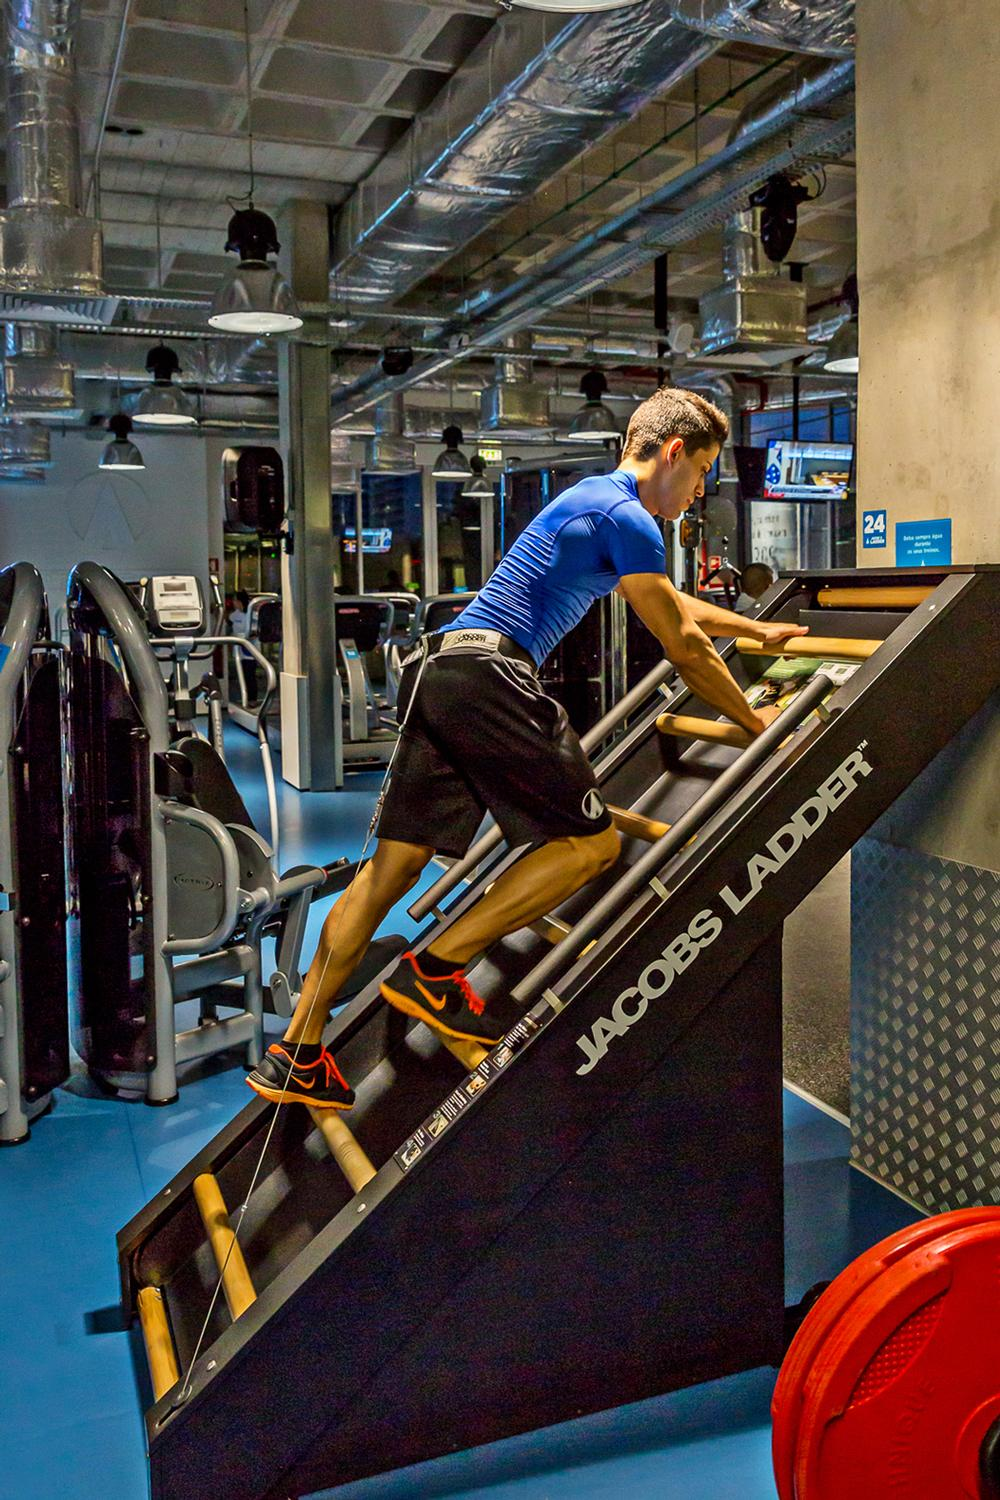 Around 50 per cent of Fitness Hut members are new to exercise